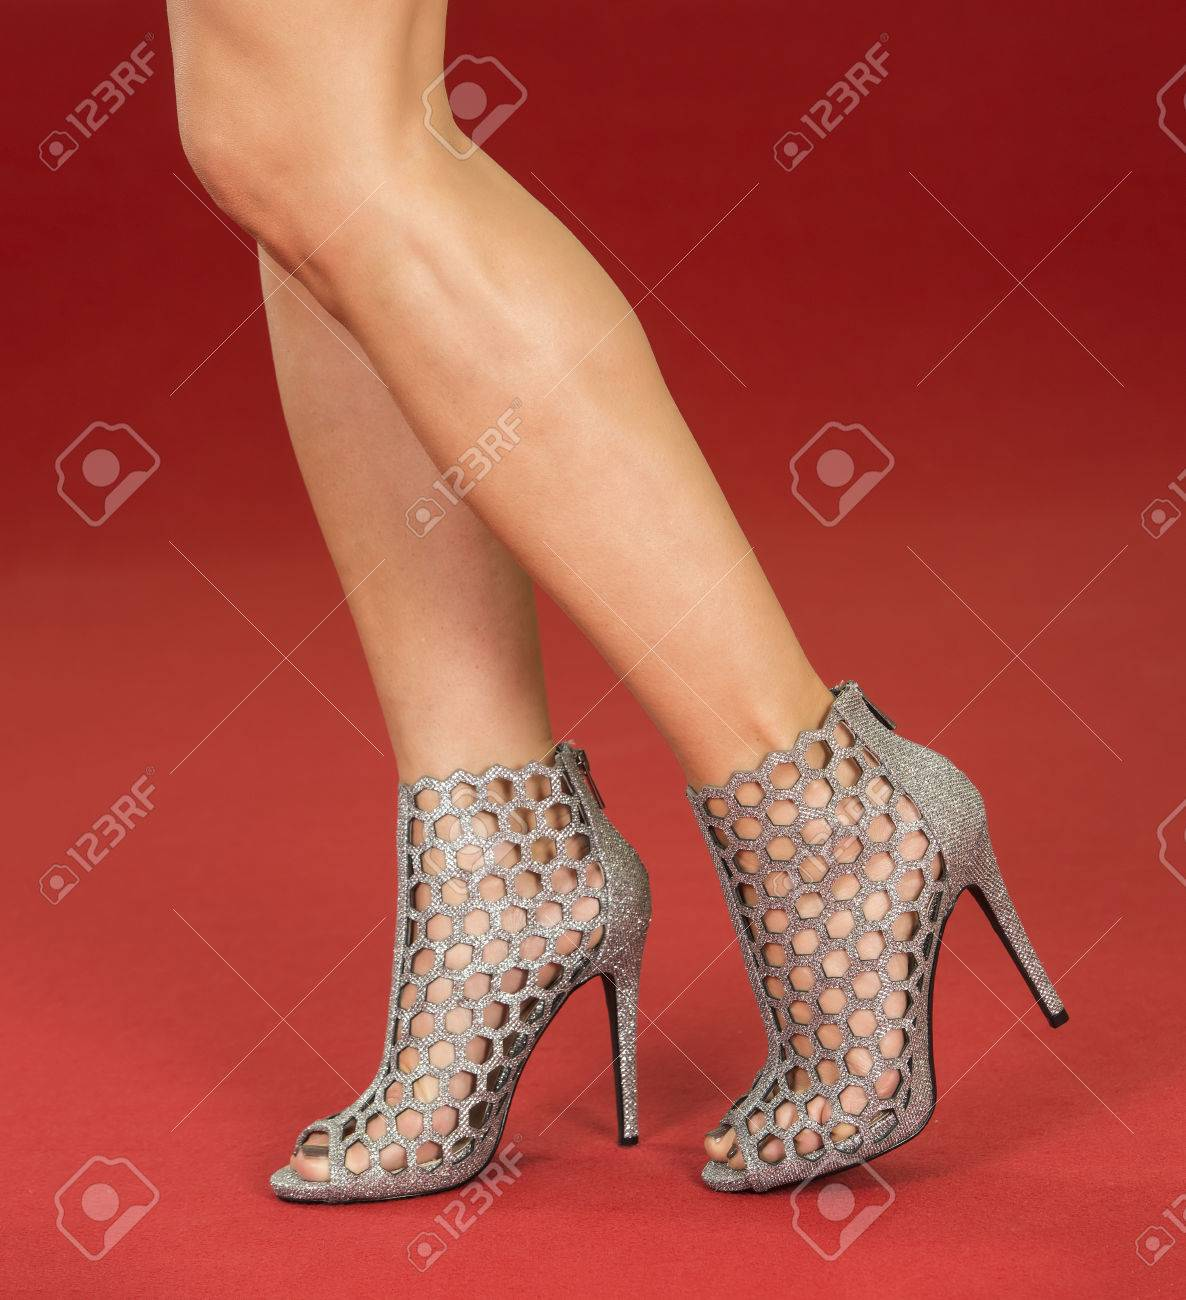 1d5052534cb7 Sexy legs of a woman wearing high heels ankle boots in silver metallic  design on a